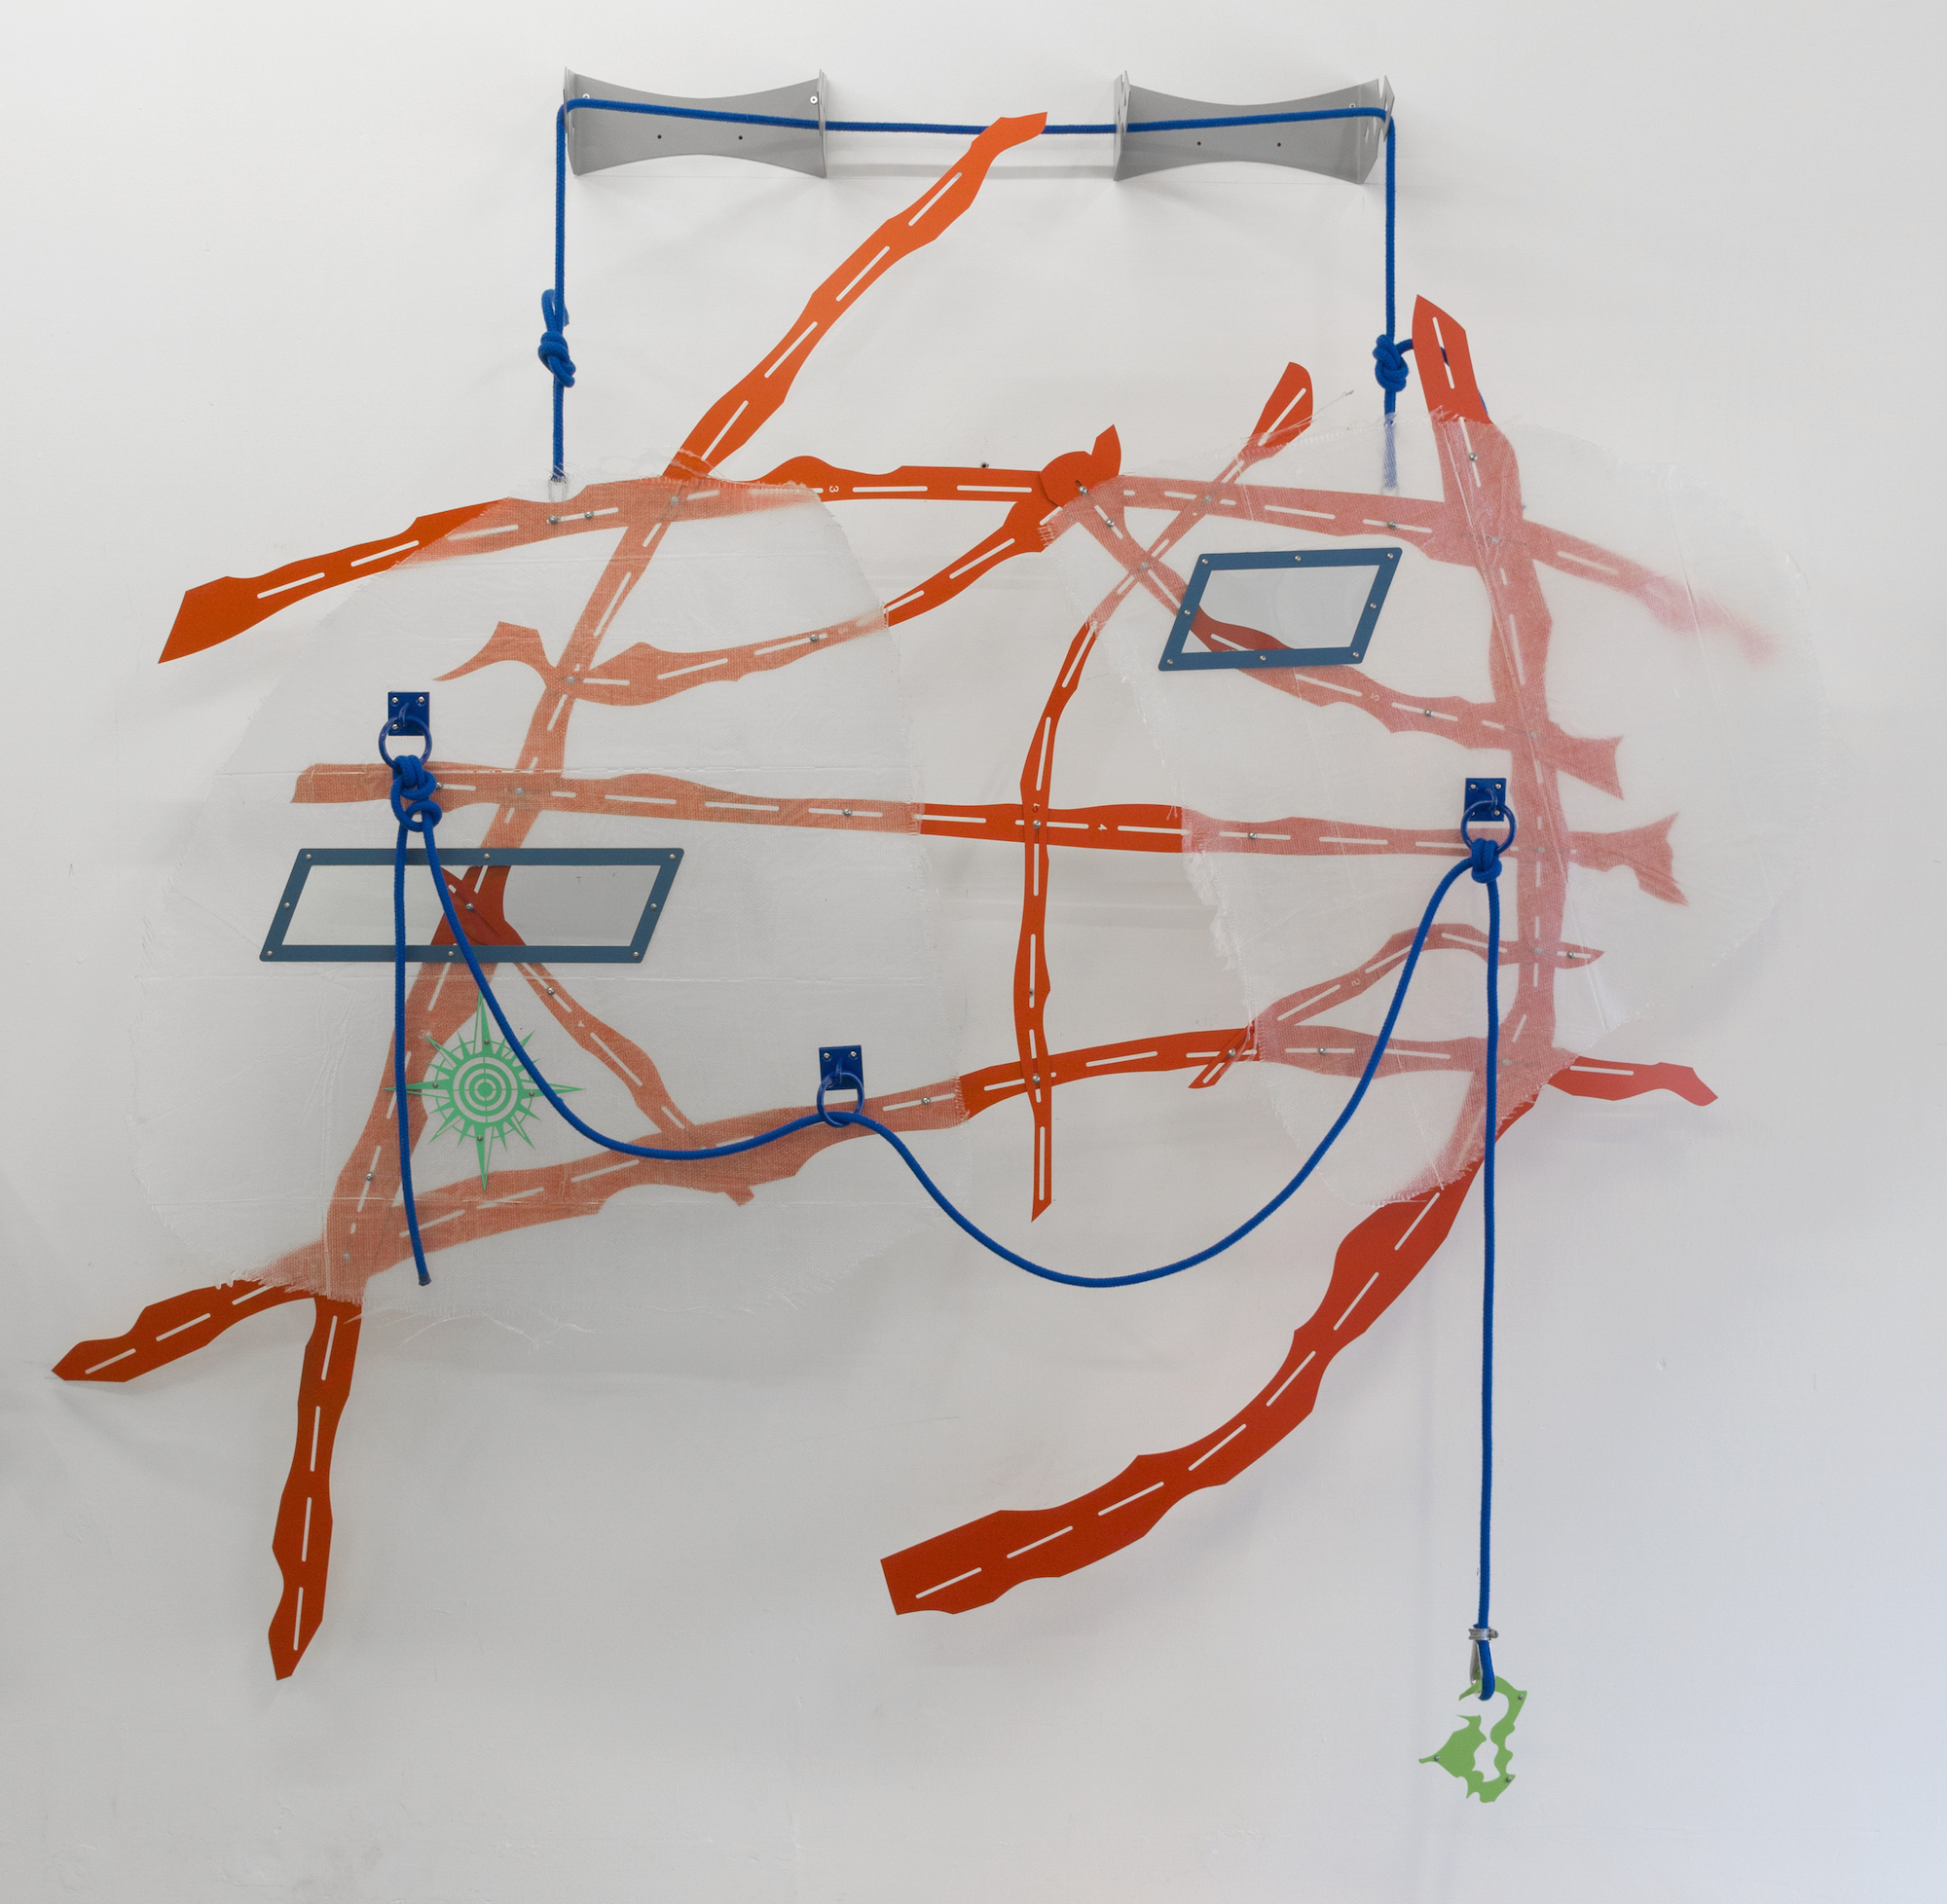 Hanae Wilke, Duet 1, 2018. Fibreglass, epoxy resin, rope, steel, aerosol paint. 181 x 234 x 31 cm.